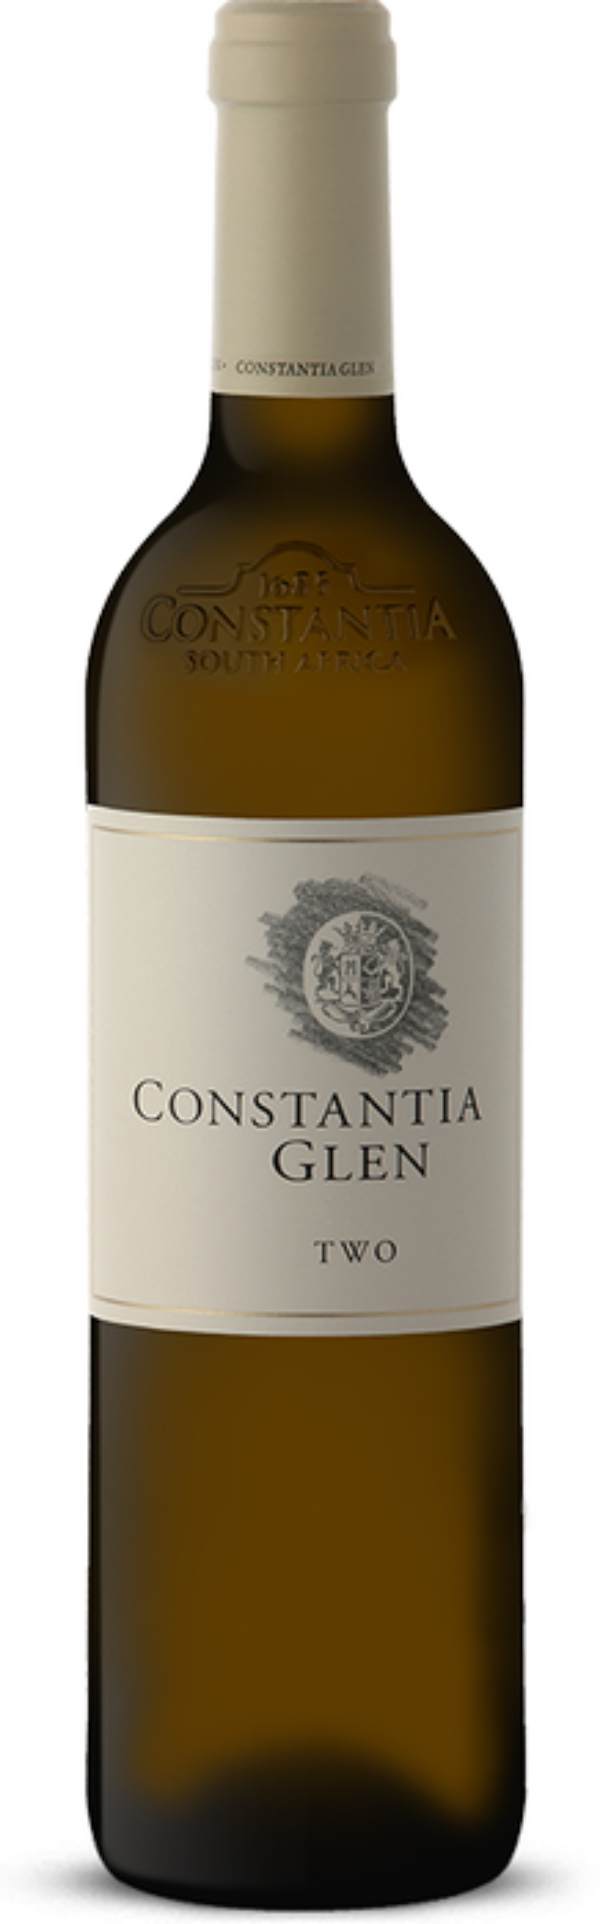 Constantia Glen Two White Blend 2016/17